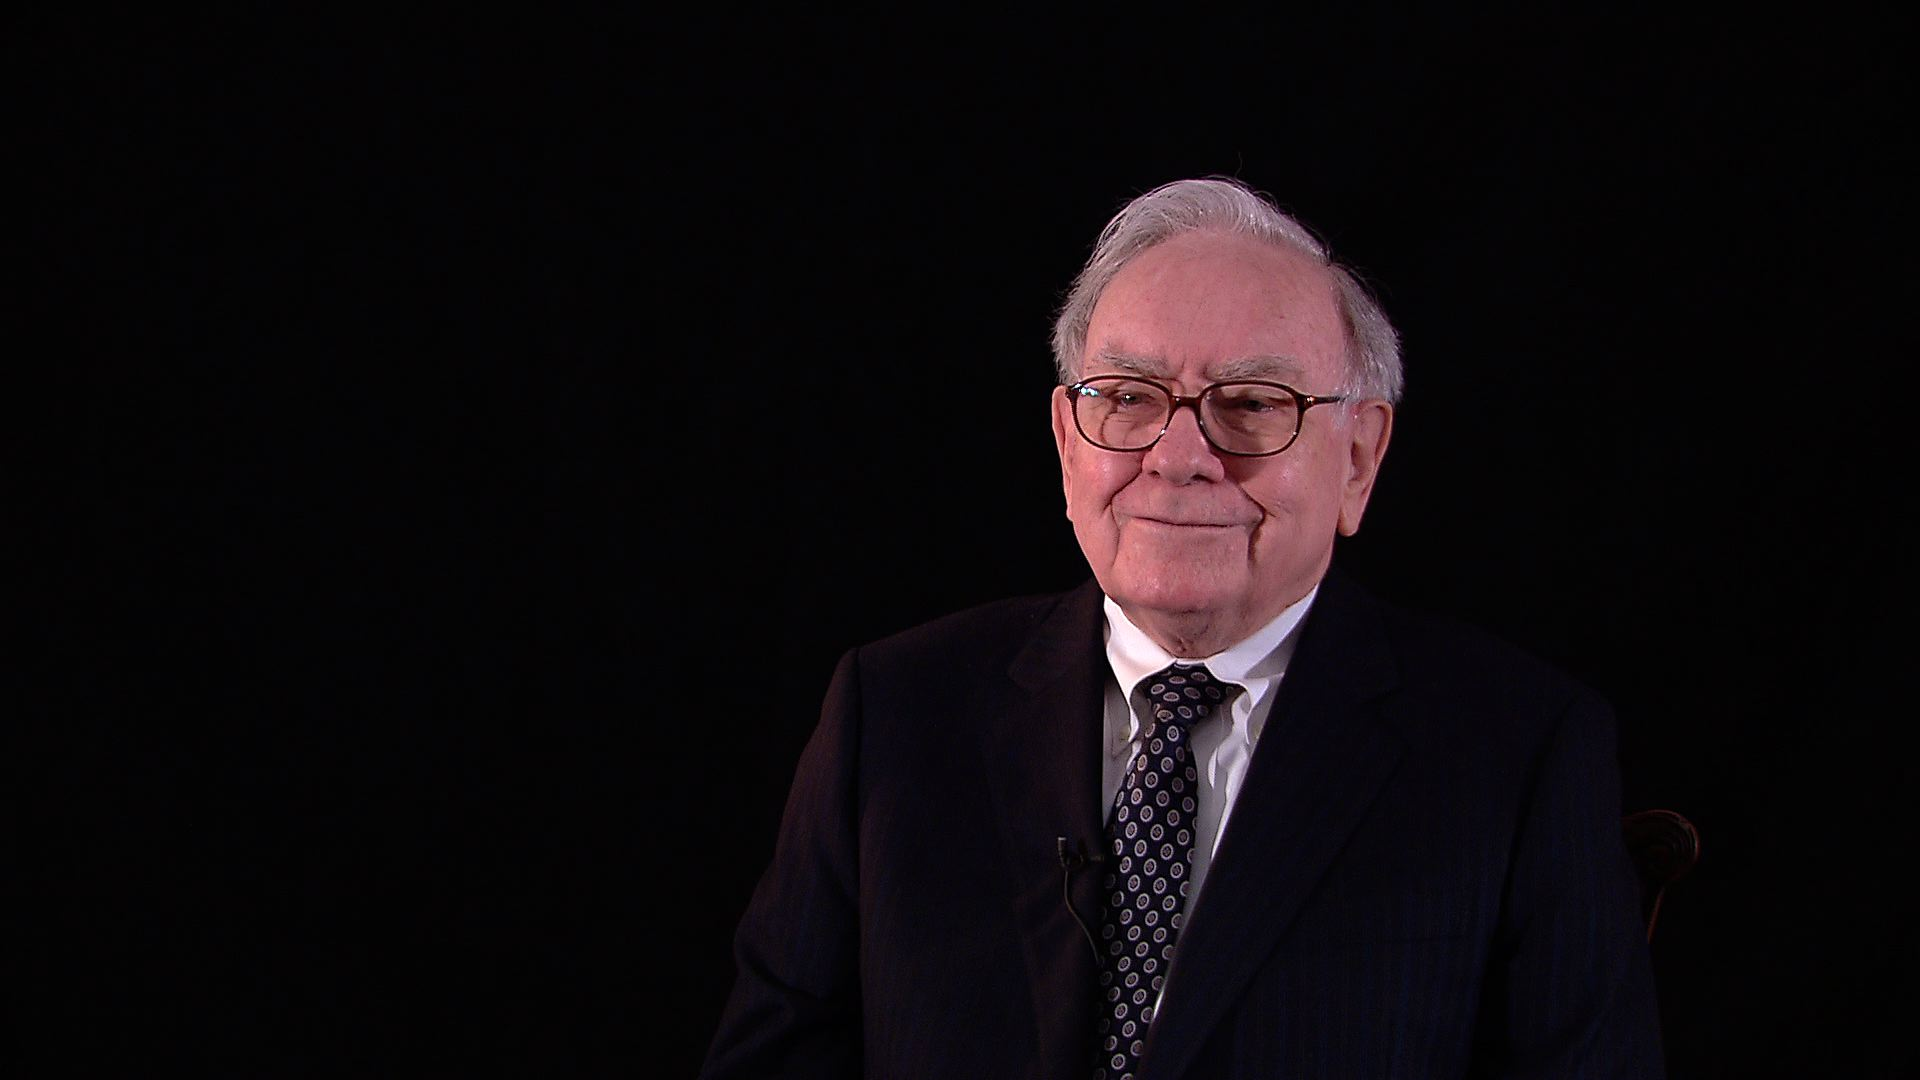 2010 Presidential Medal of Freedom Recipient - Warren Buffett | The White House